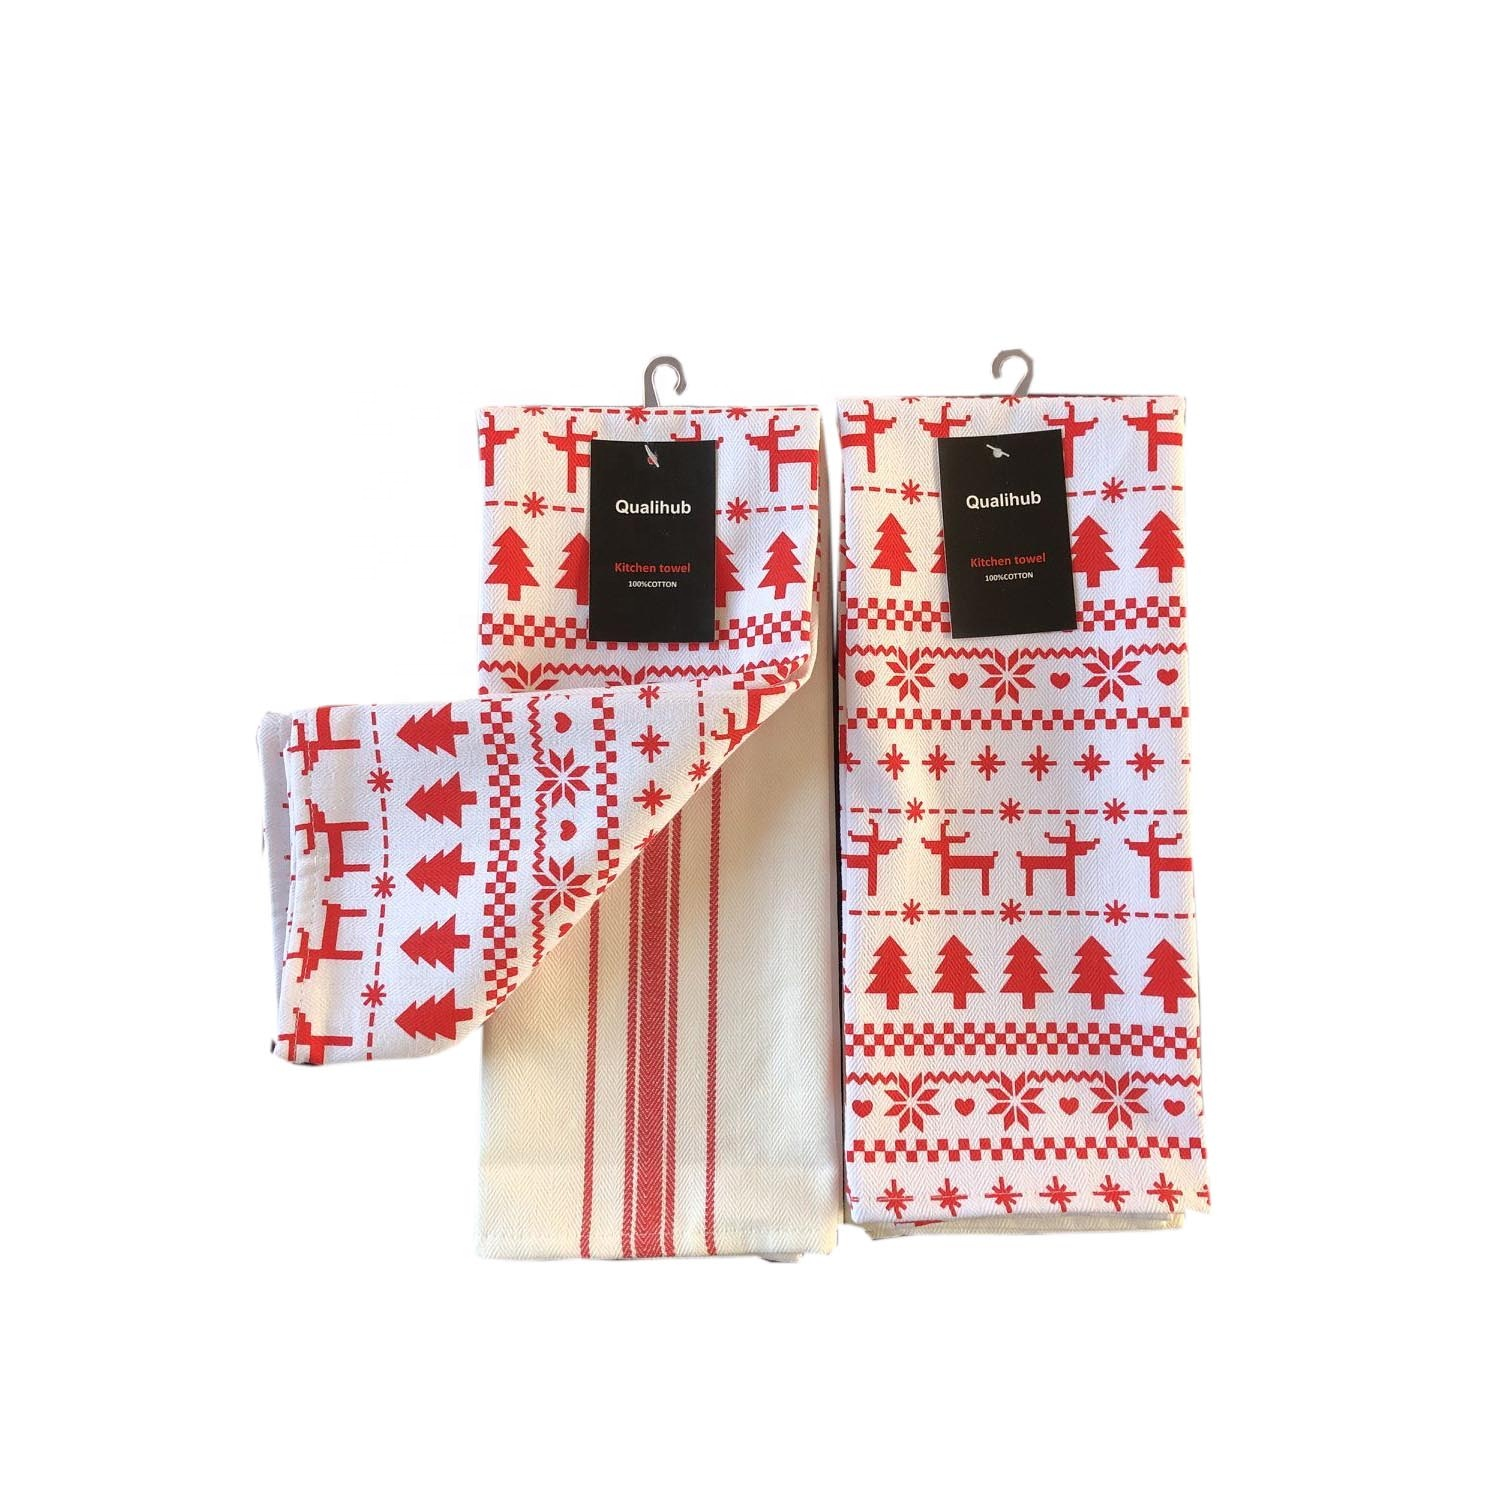 2020 new christmas design printed kitchen towel